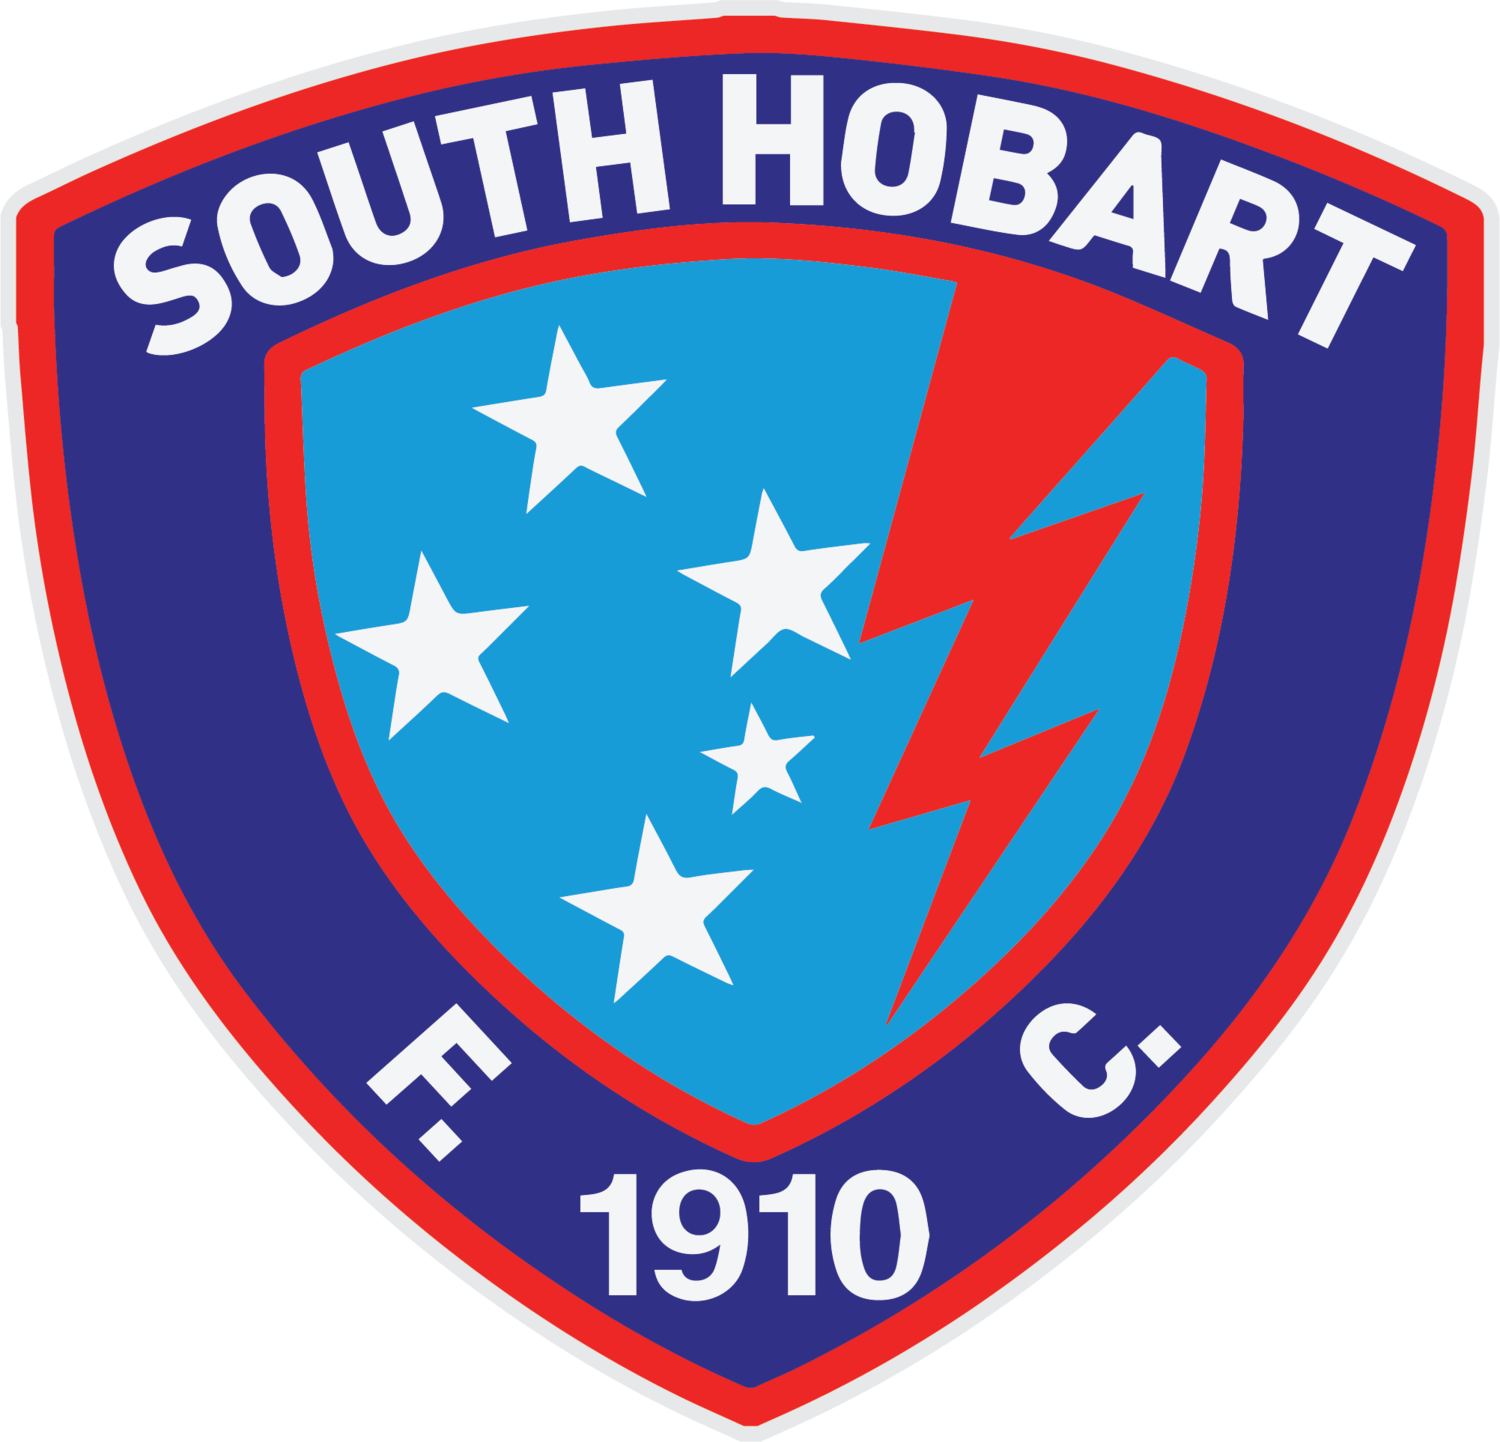 Image result for south hobart fc